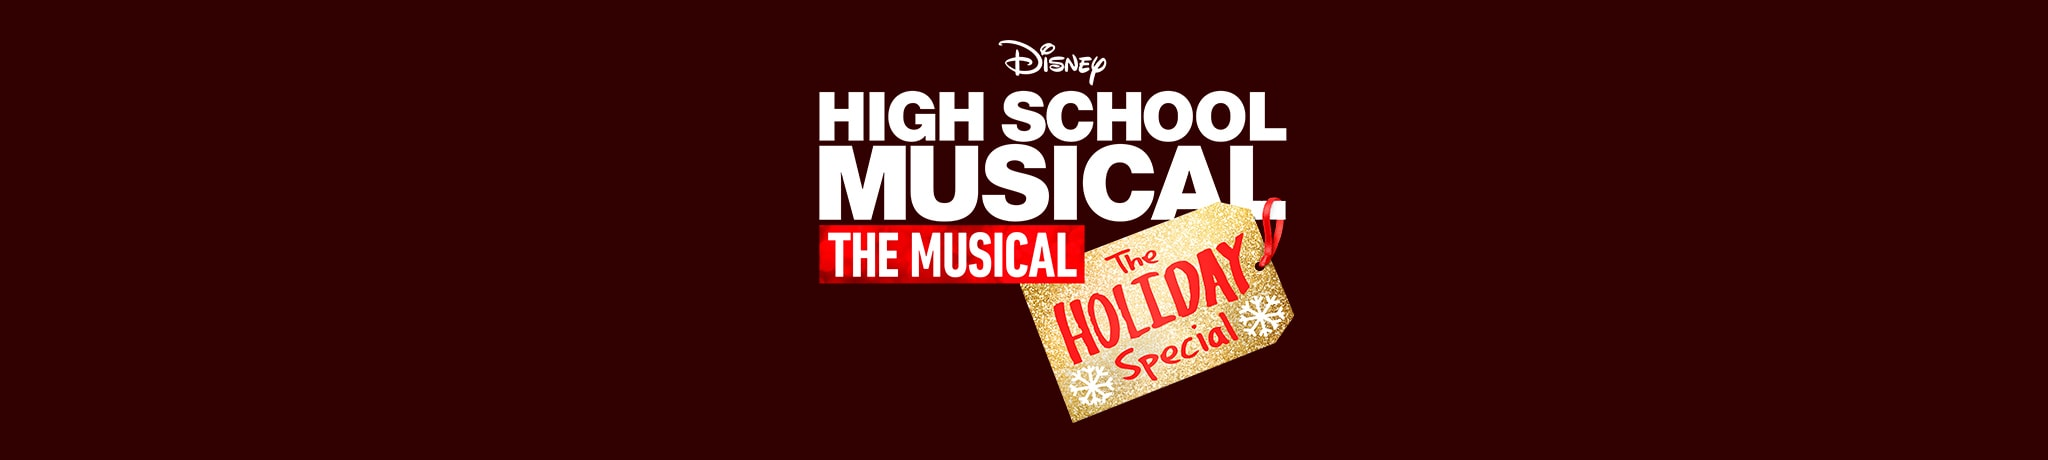 Disney | High School Musical: The Musical: The Holiday Special